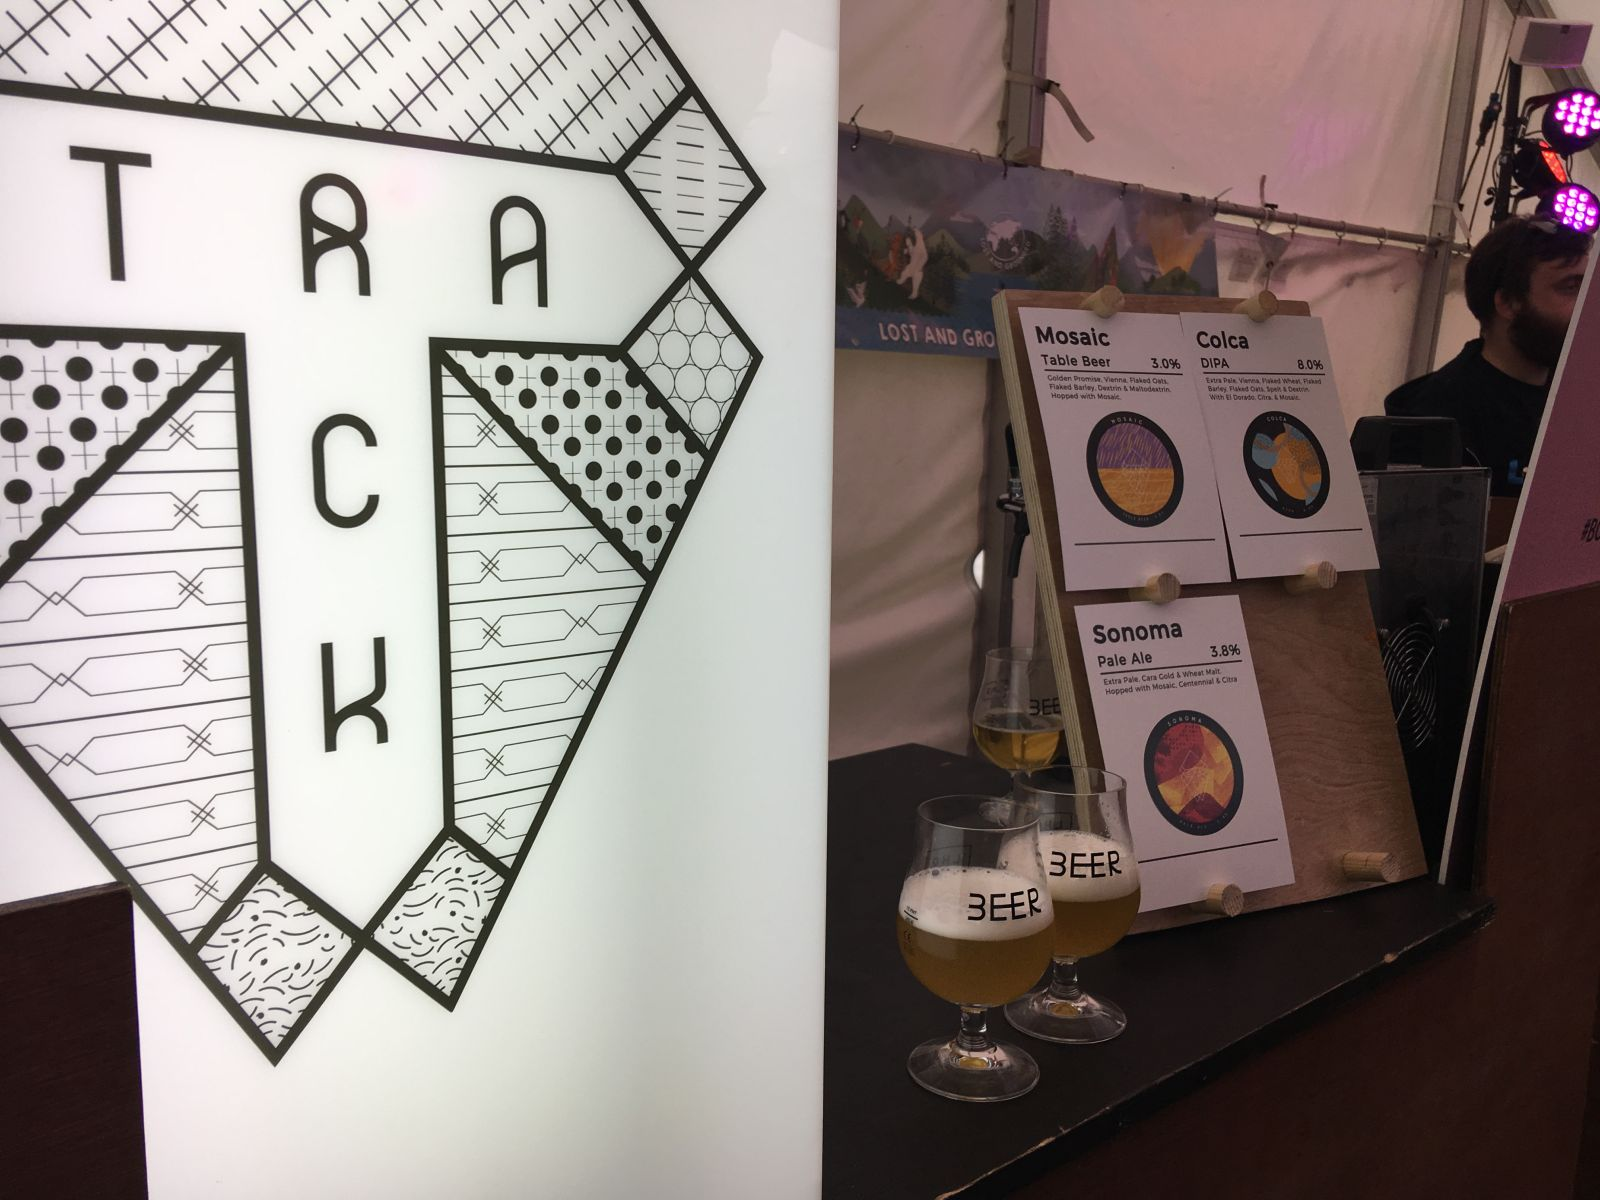 Track's Sonoma was one of the best beers we tried at the 2018 BCBF.